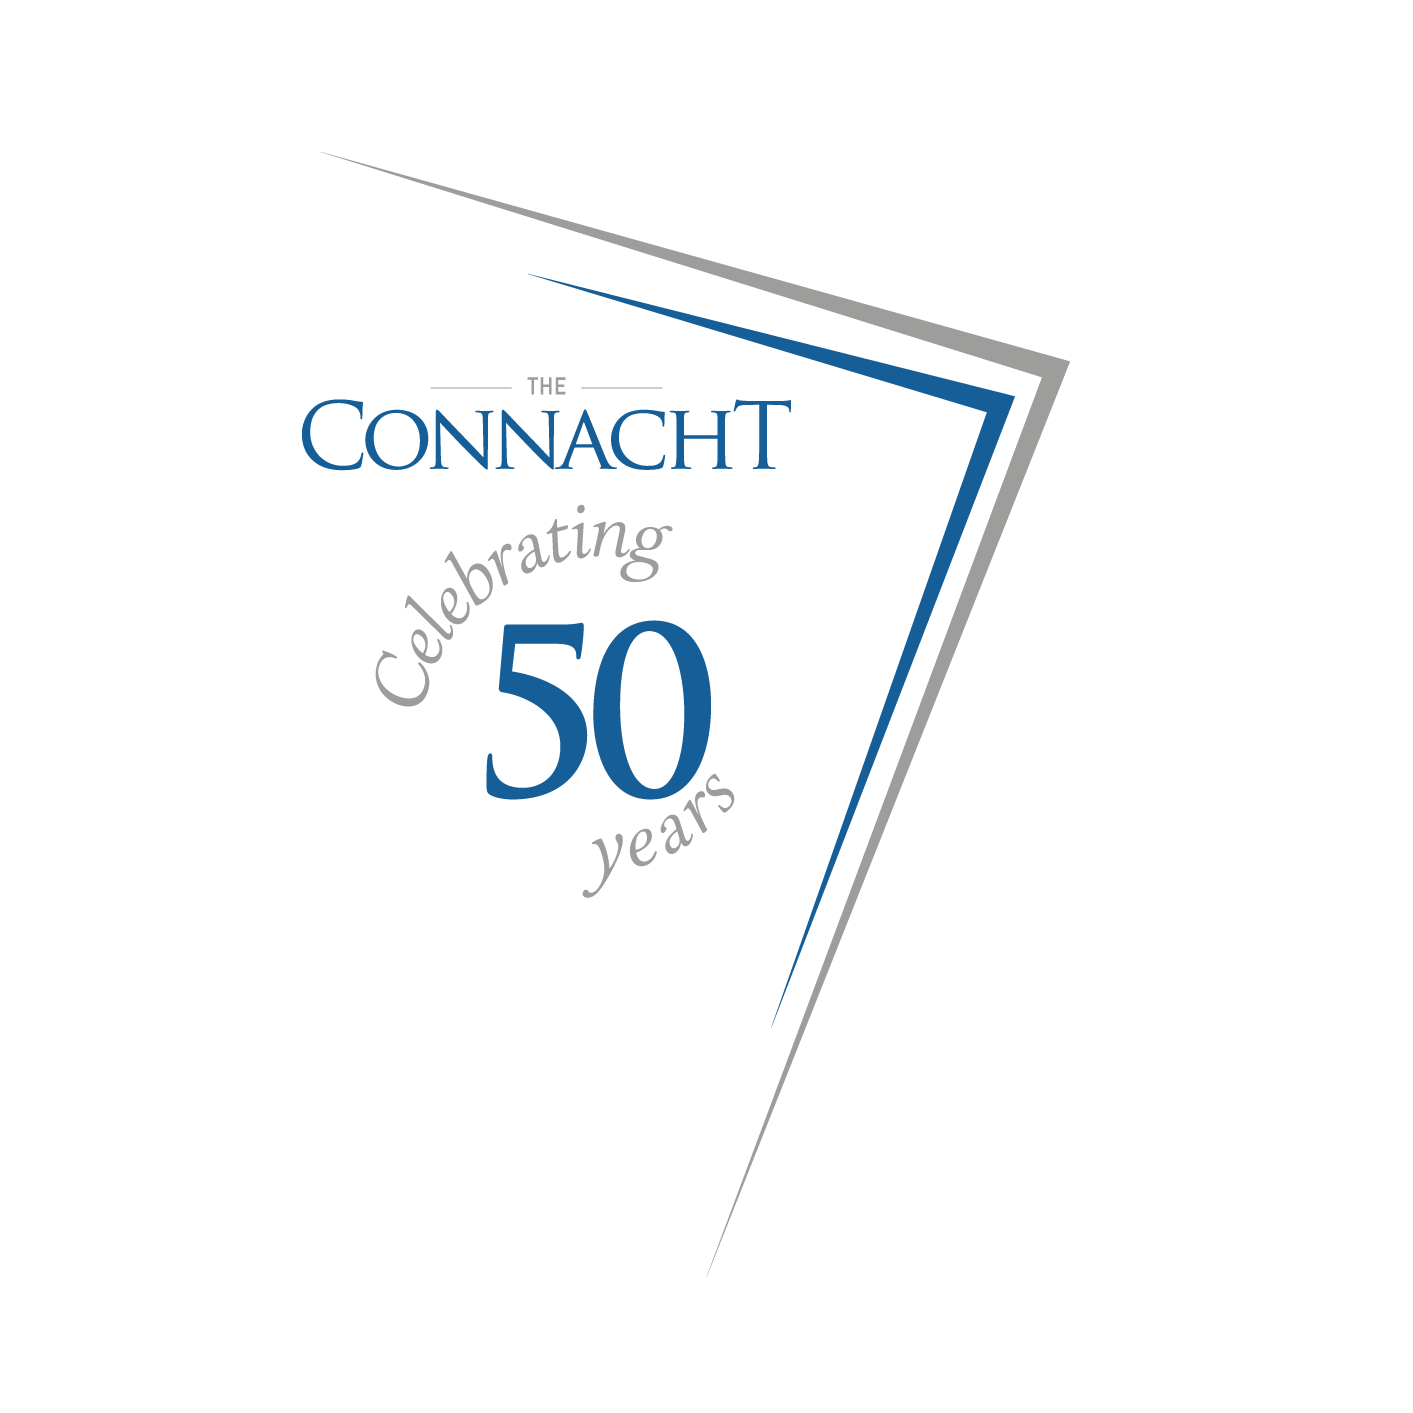 celebrate with us - 50 year anniversary of the connacht hotel galway - galway ryan hotel